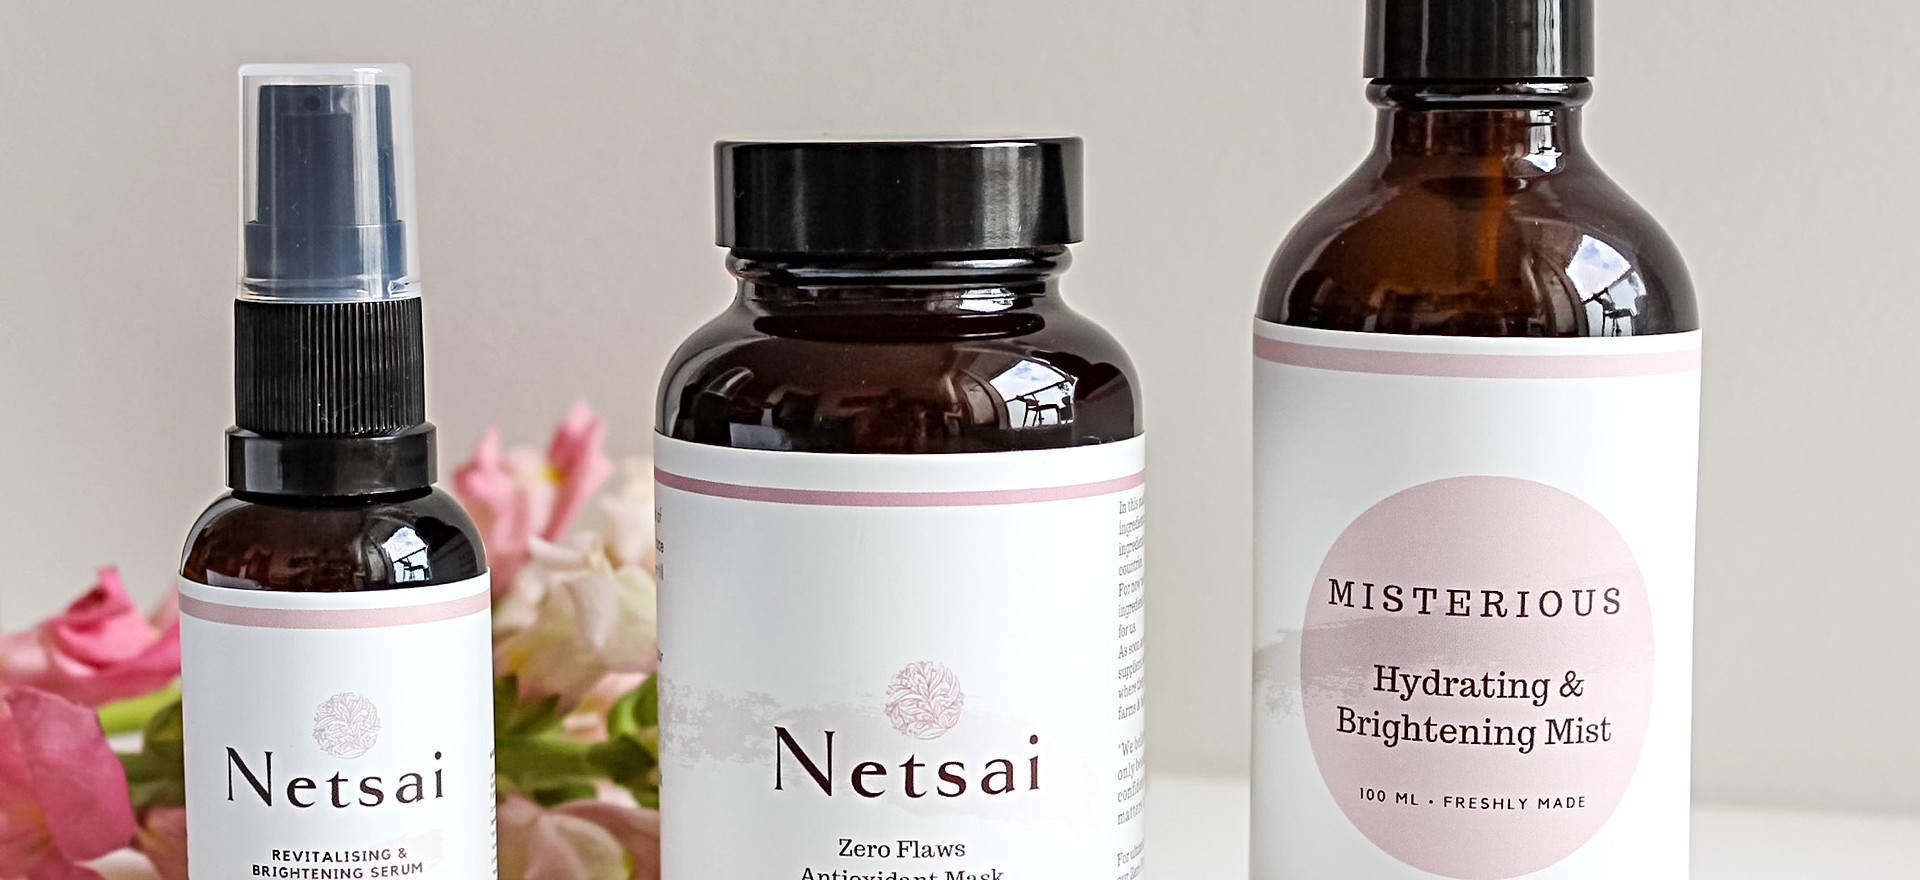 Discover an effortless sustainable way to  care for your skin